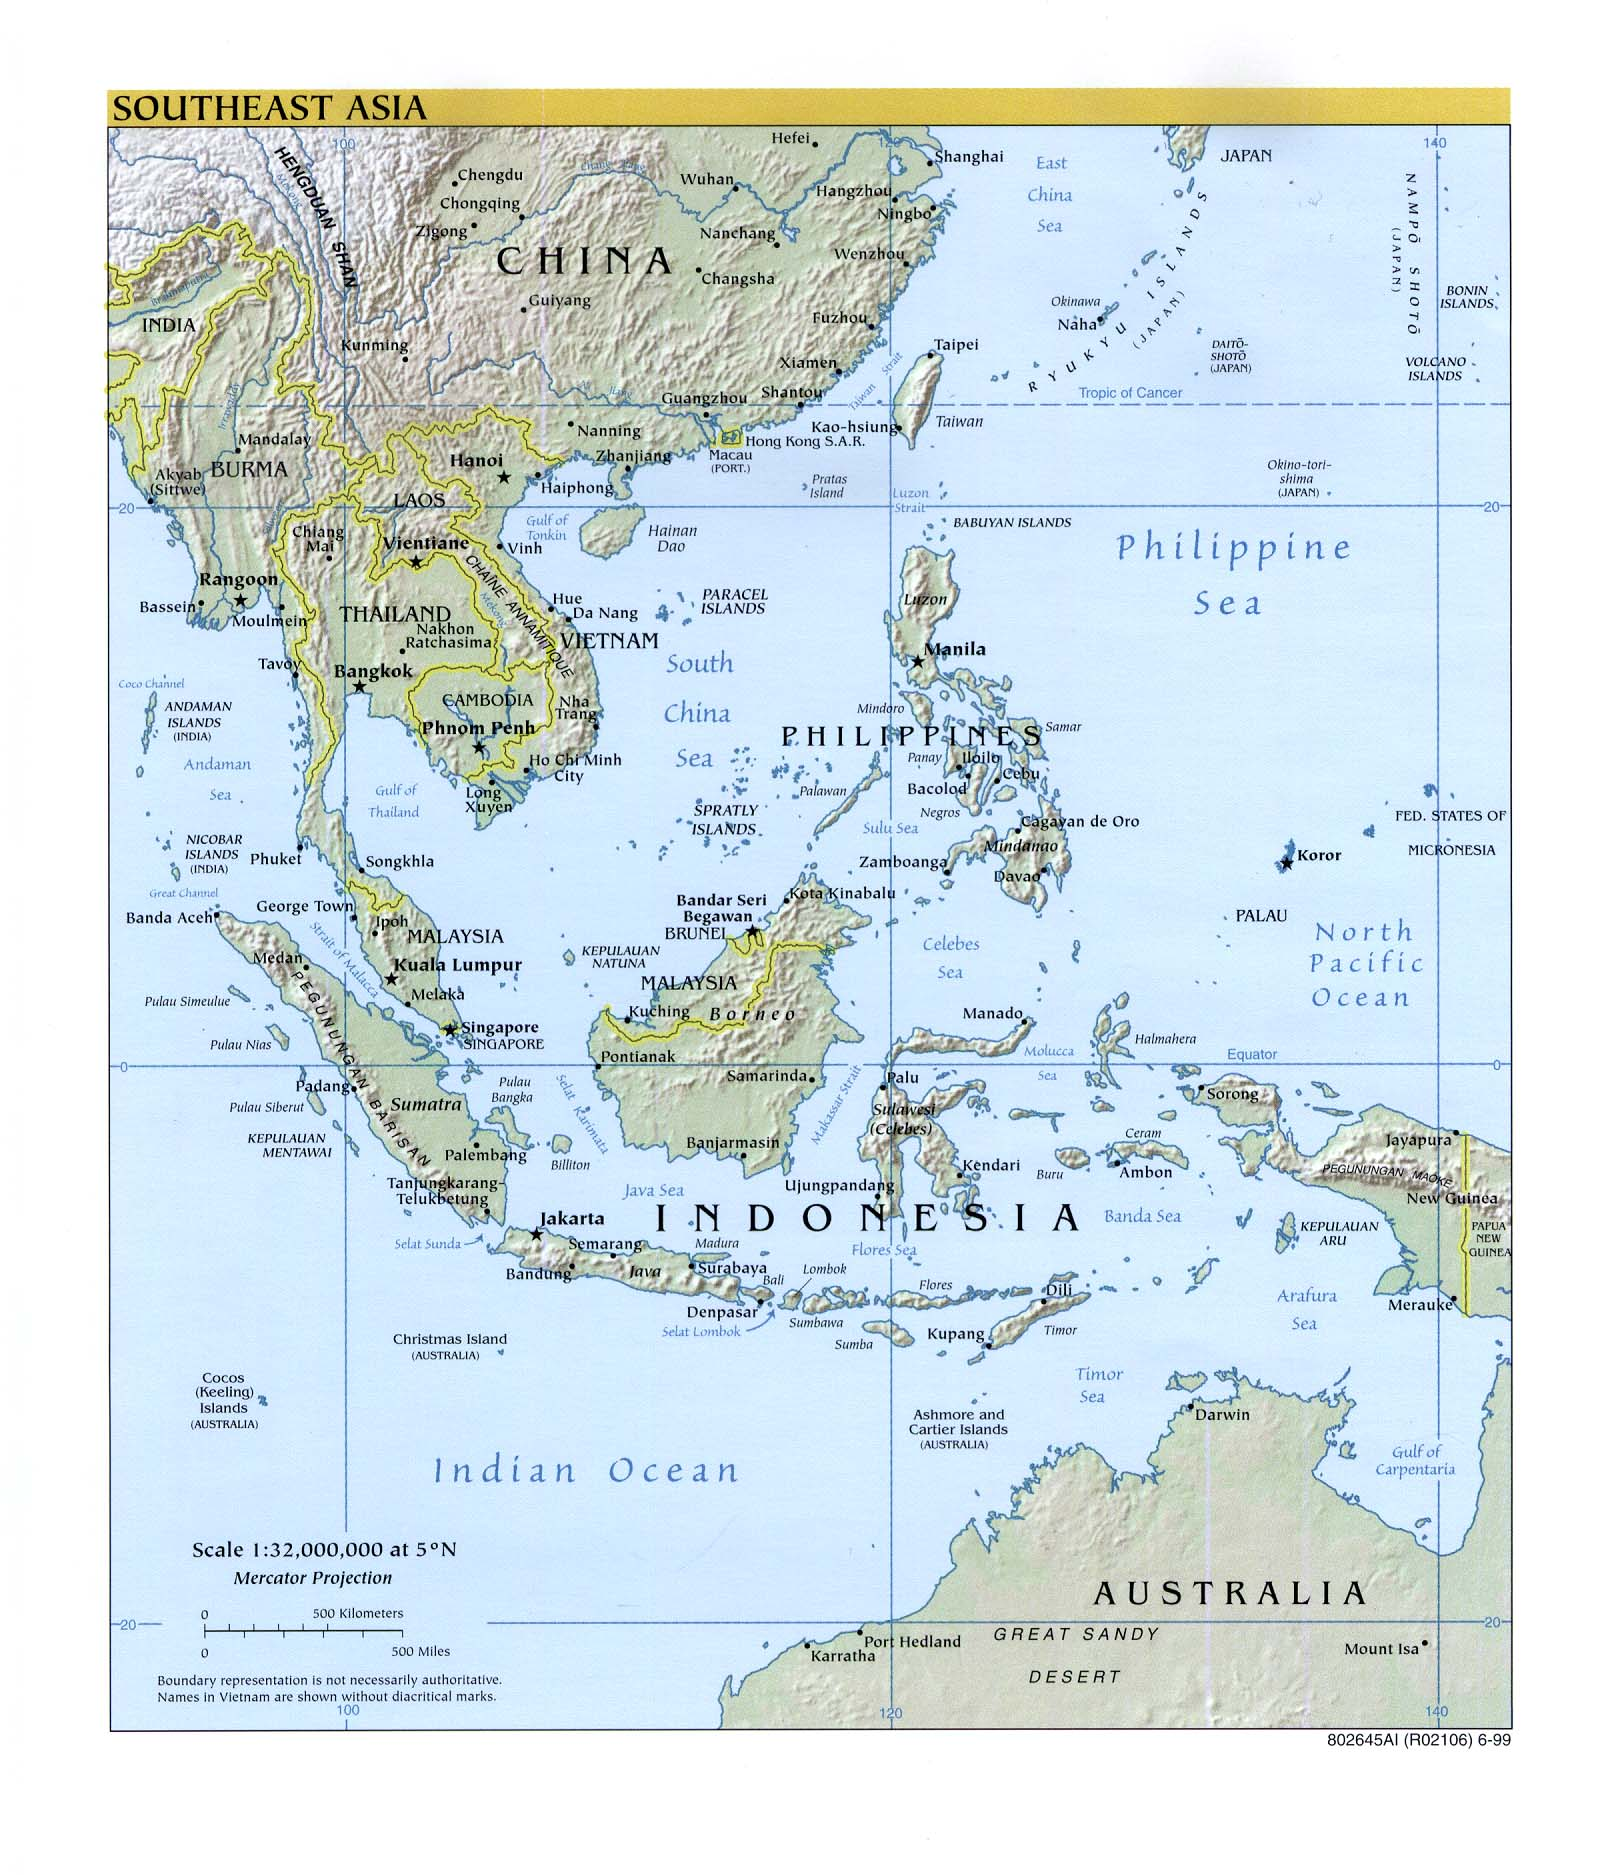 Southeast Asia physical map 1999